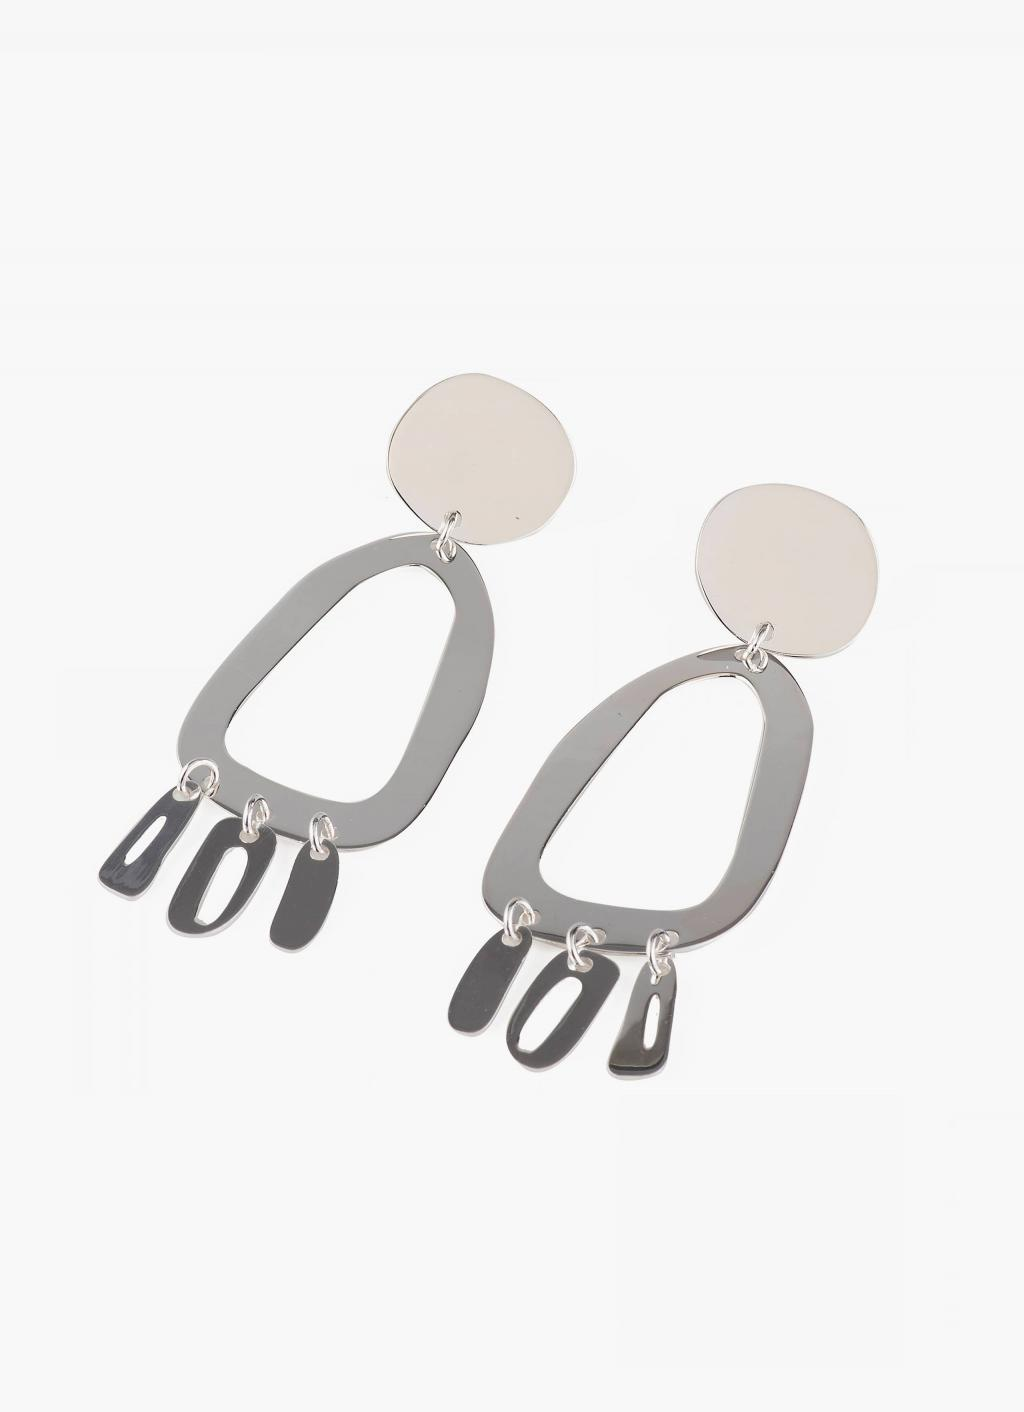 Modern Weaving - Odd Oval Fringe Earrings - Sterling Silver